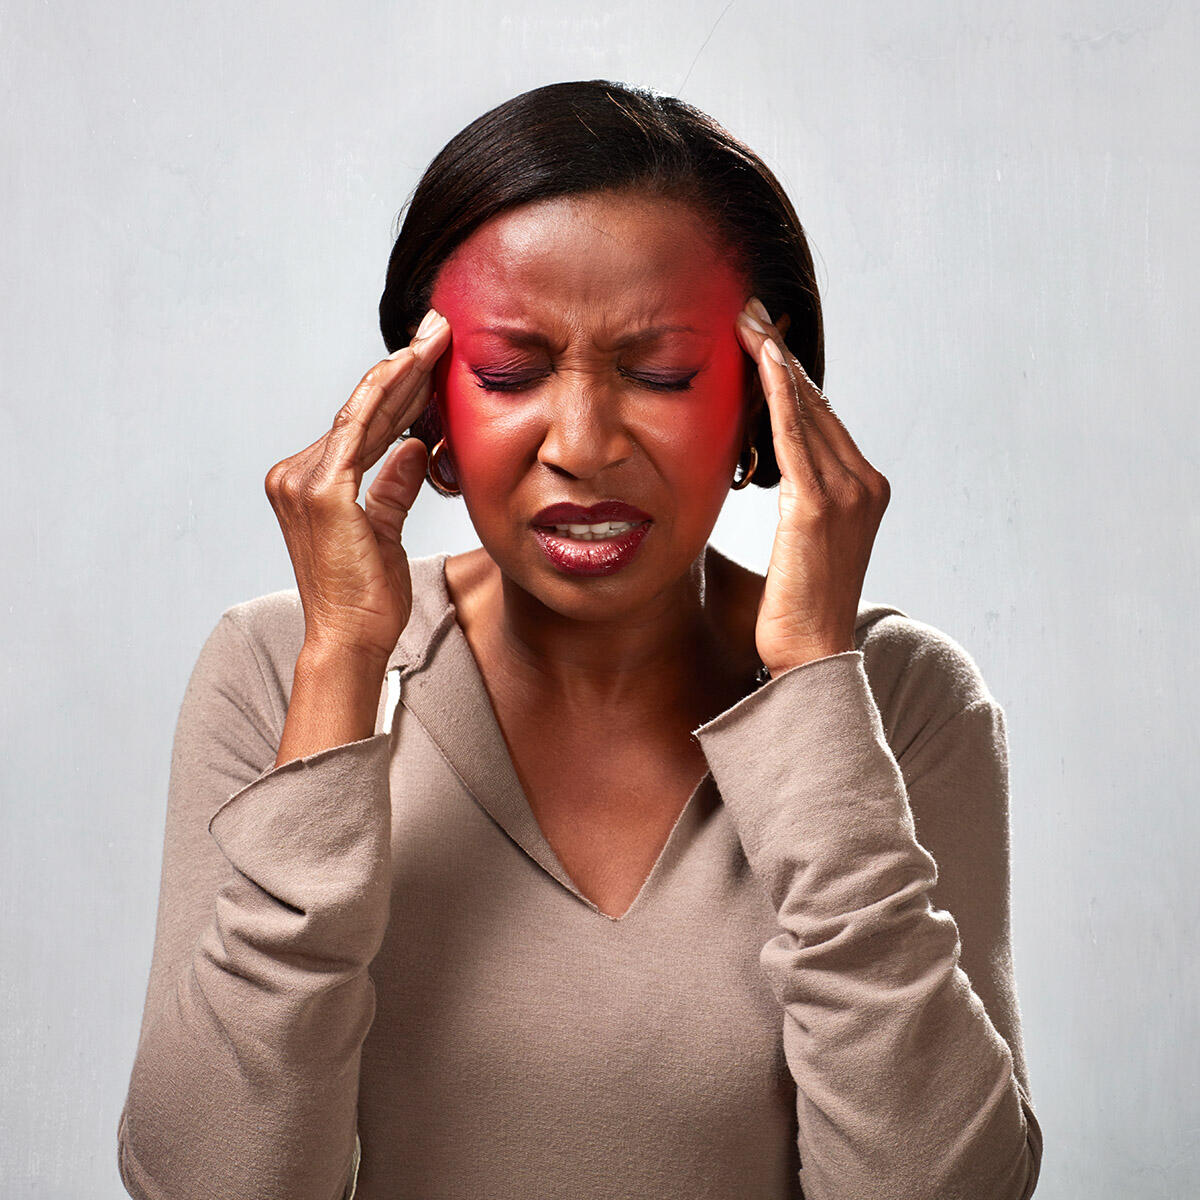 woman with hands to her temples. Red radiates from under her finger tips and she wears a painful expression.